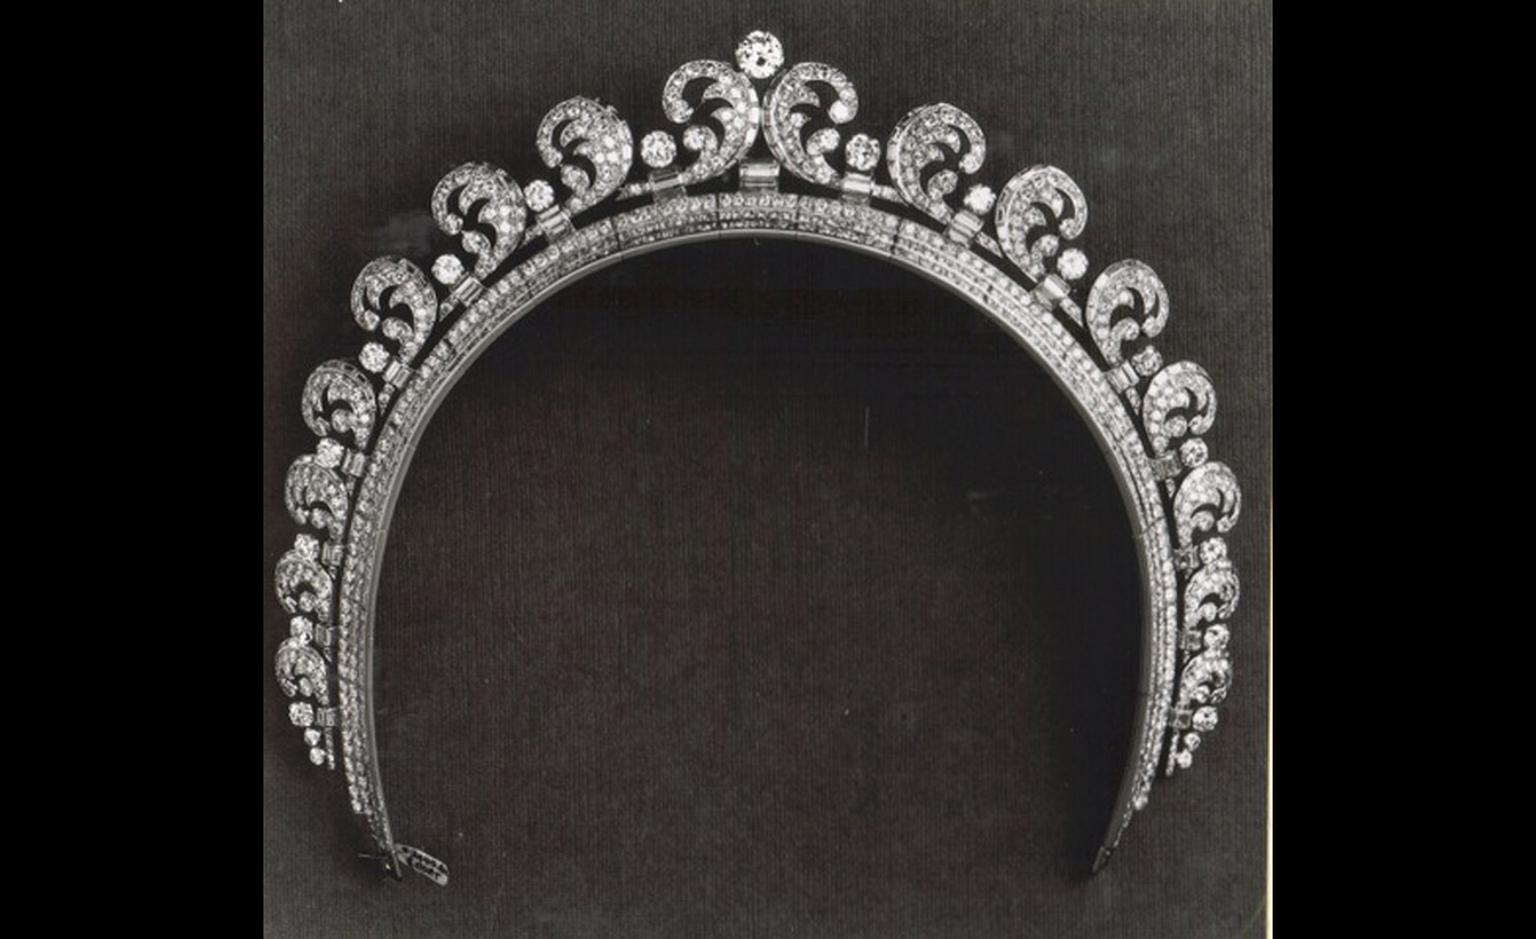 The Cartier 'Halo' tiara that Kate Middleton wore on her wedding day.